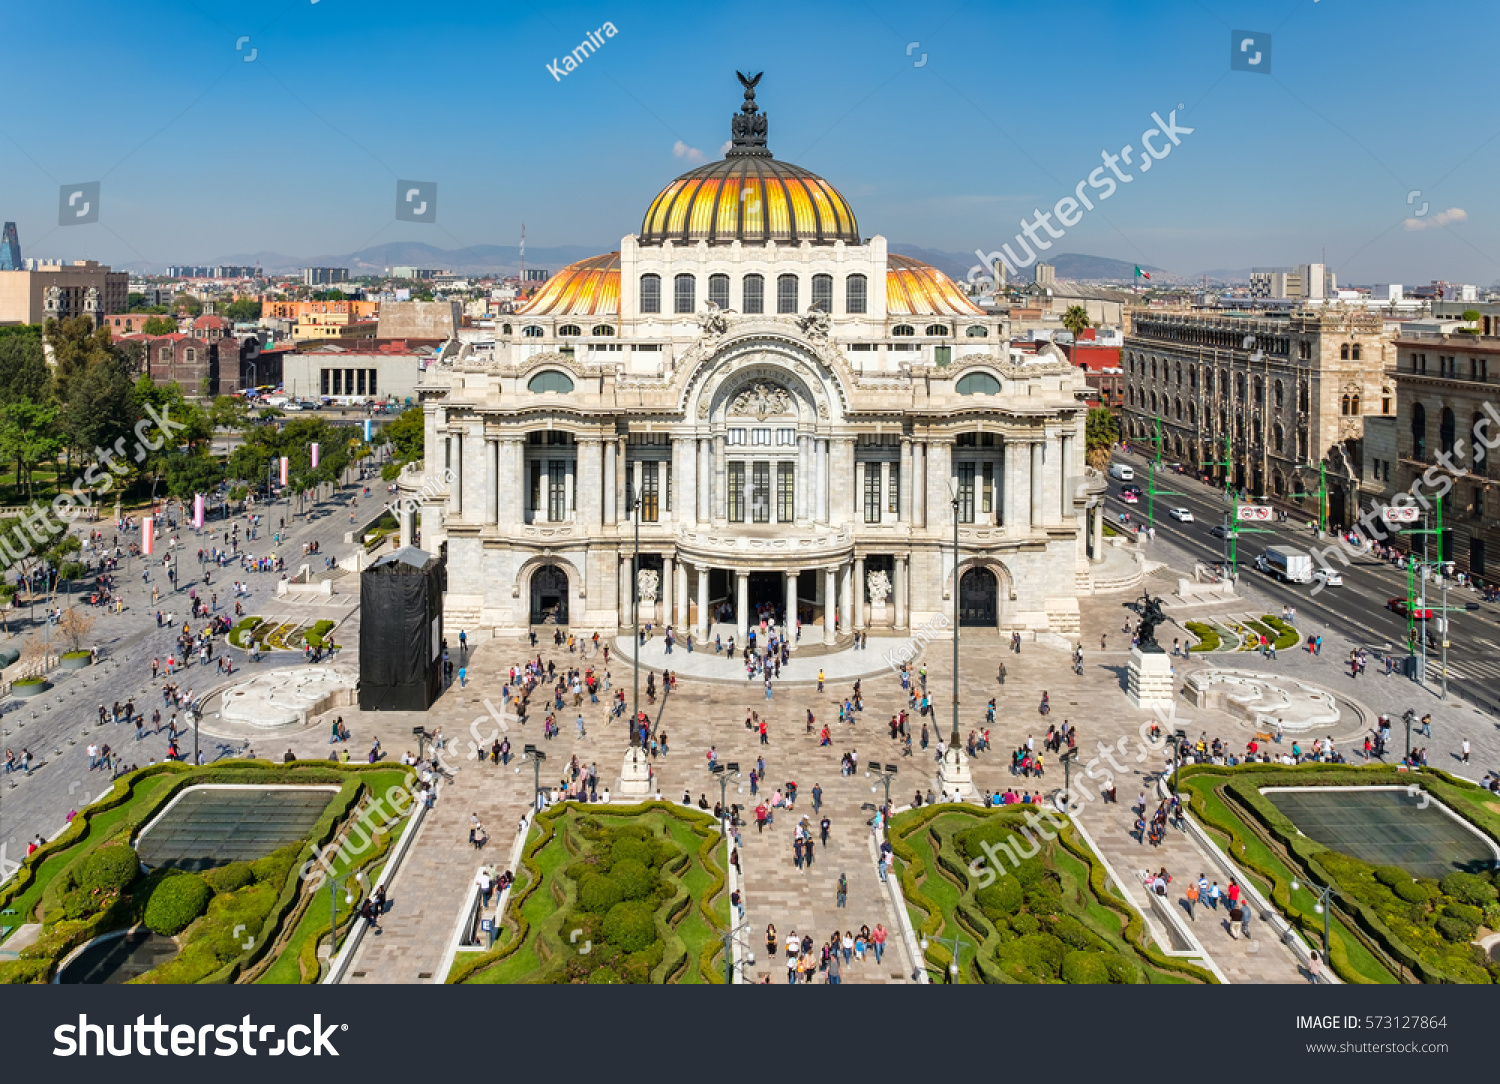 Palacio de Bellas Artes or Palace of Fine Arts, a famous theater,museum and music venue in Mexico City #573127864